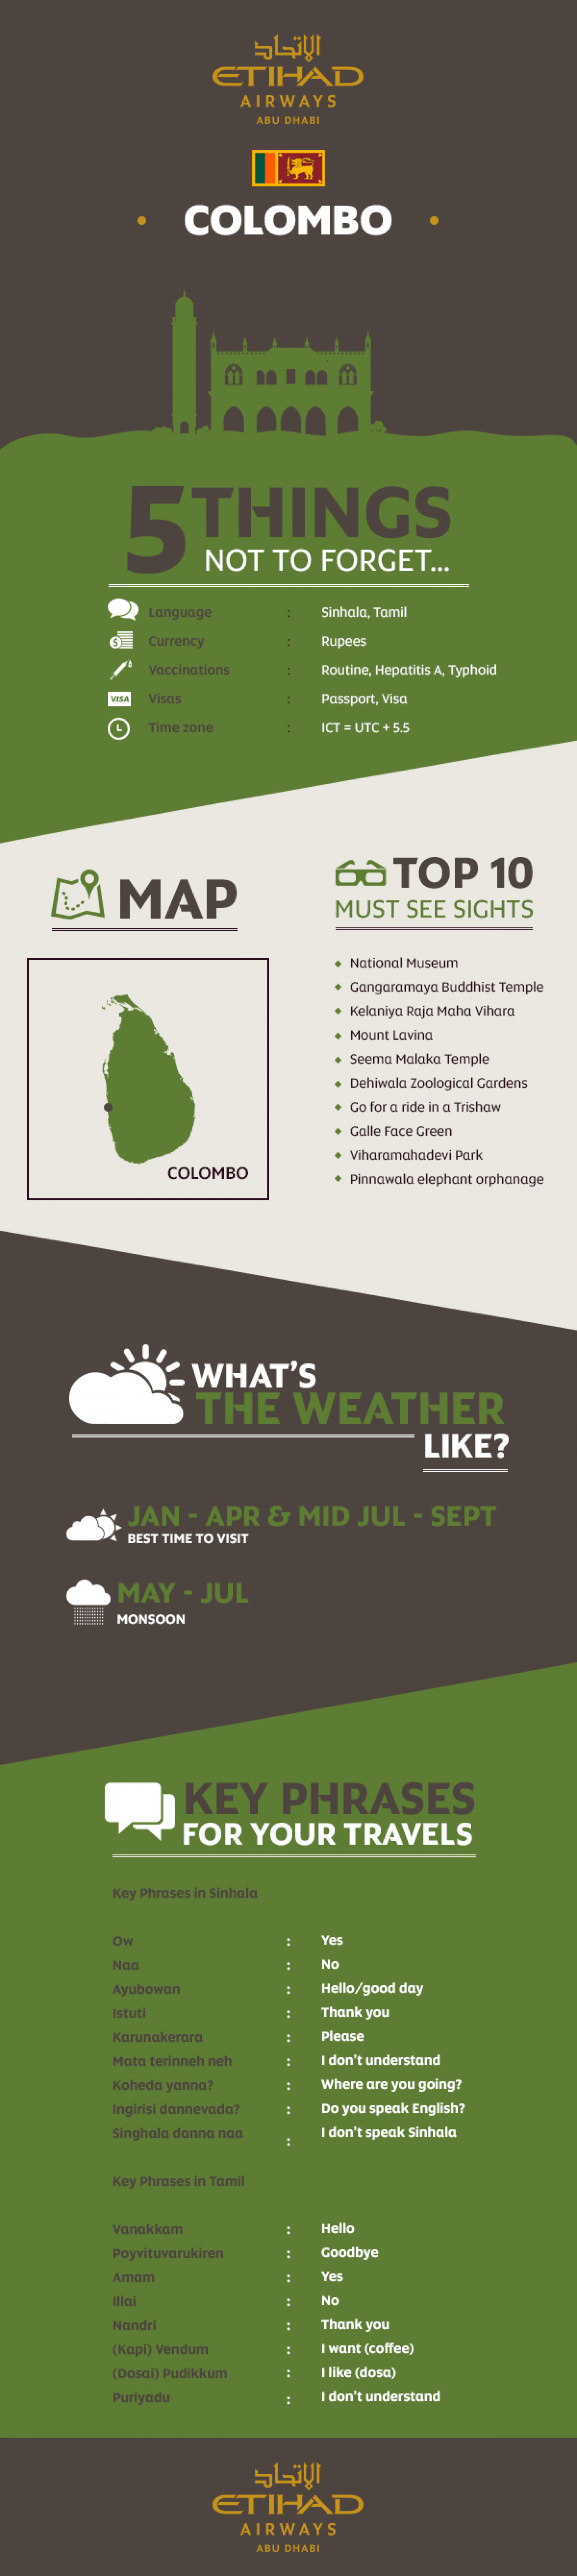 Etihad's guide to travelling to Colombo Infographic